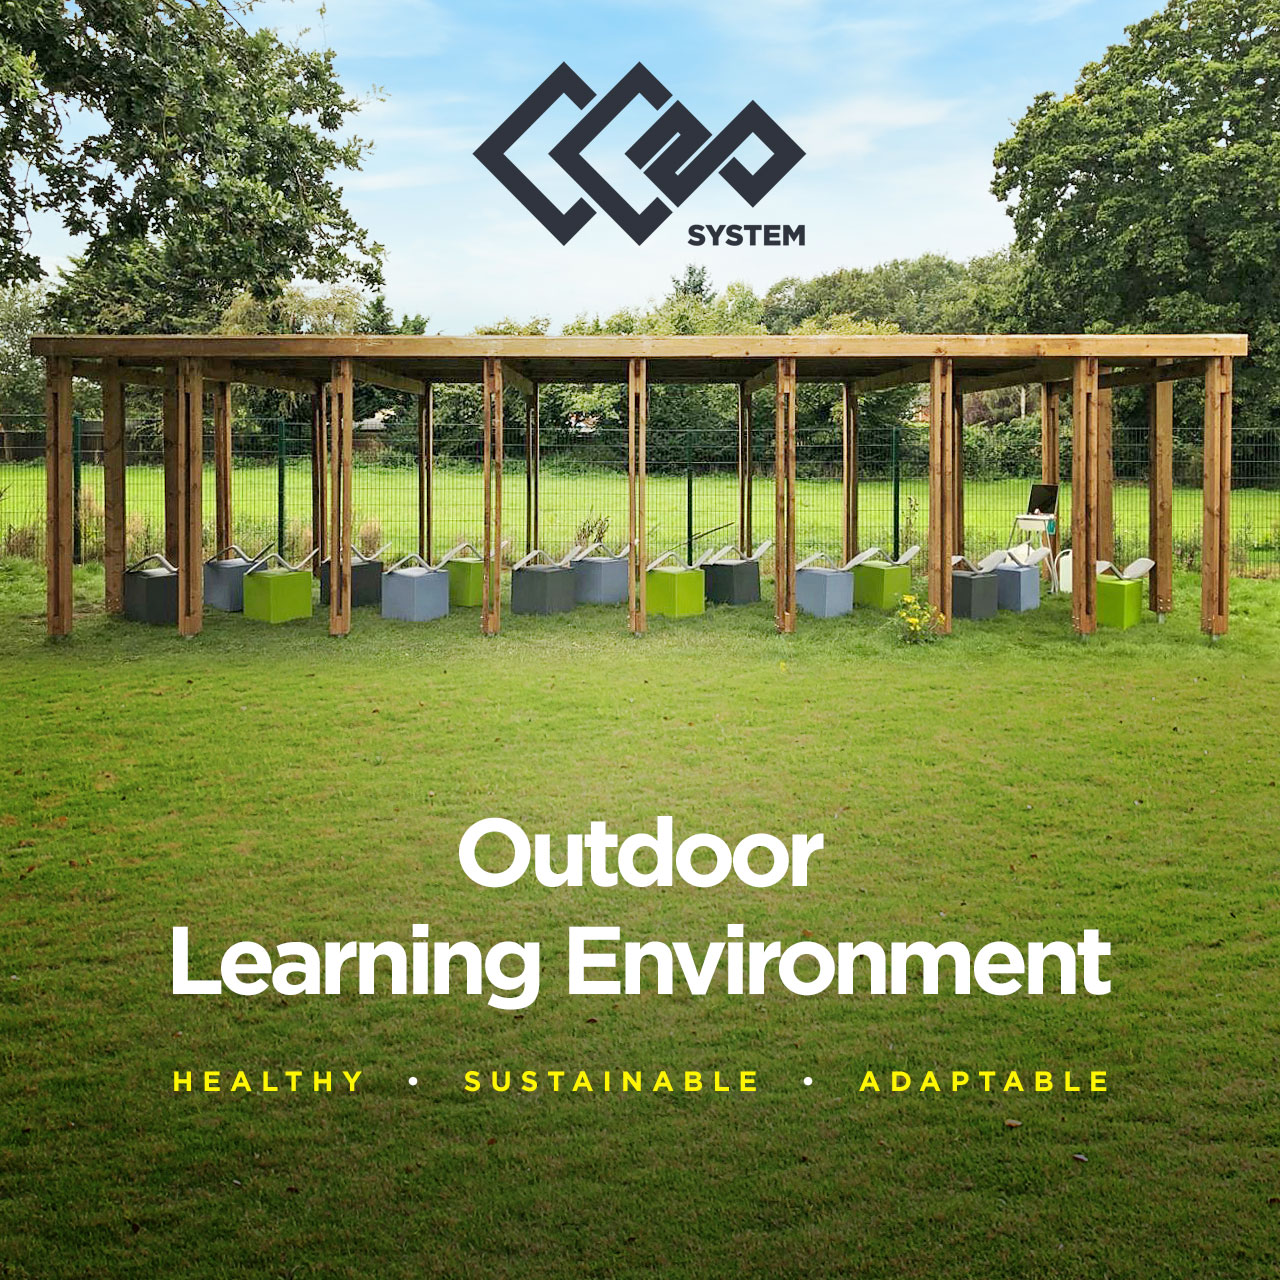 CC20-outdoorlearning-environment